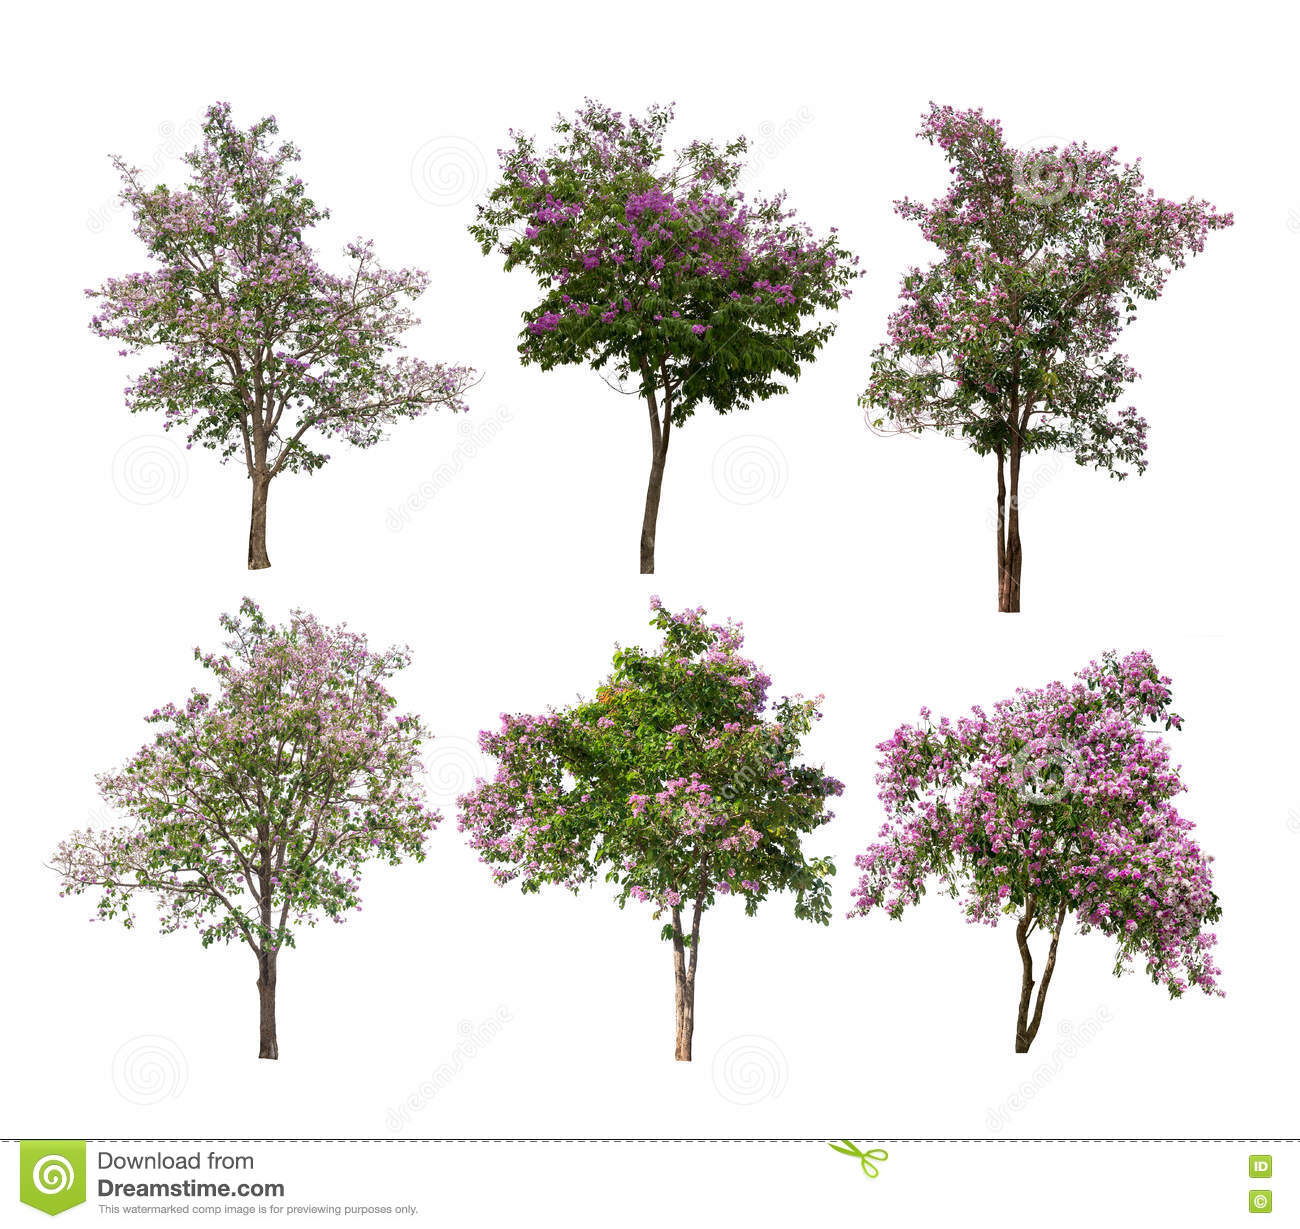 Collection Of Isolated Trees With Purple Flowers On White Backgroud